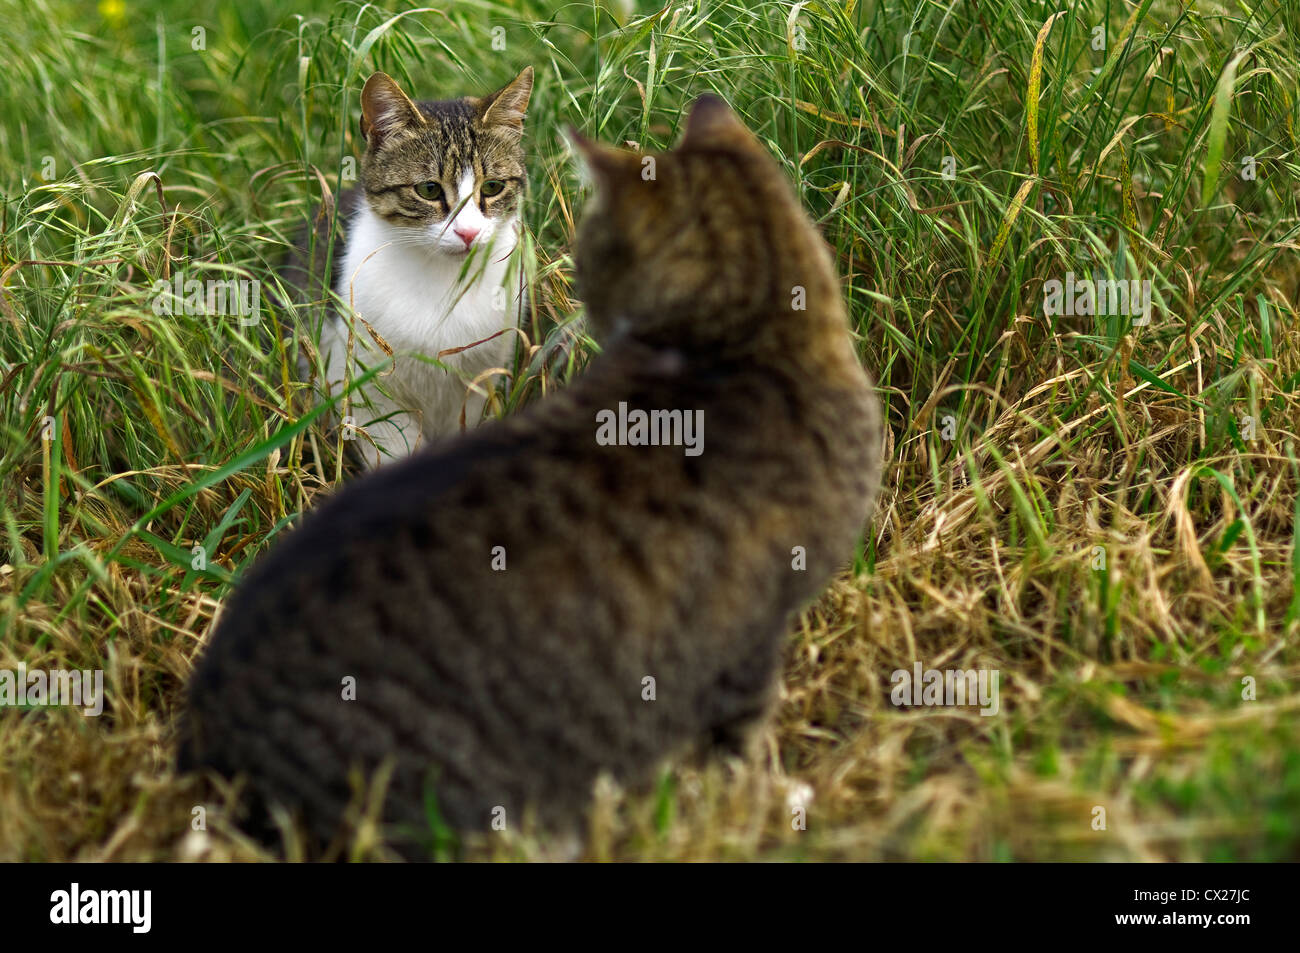 Encounter of two domestic cats - Stock Image